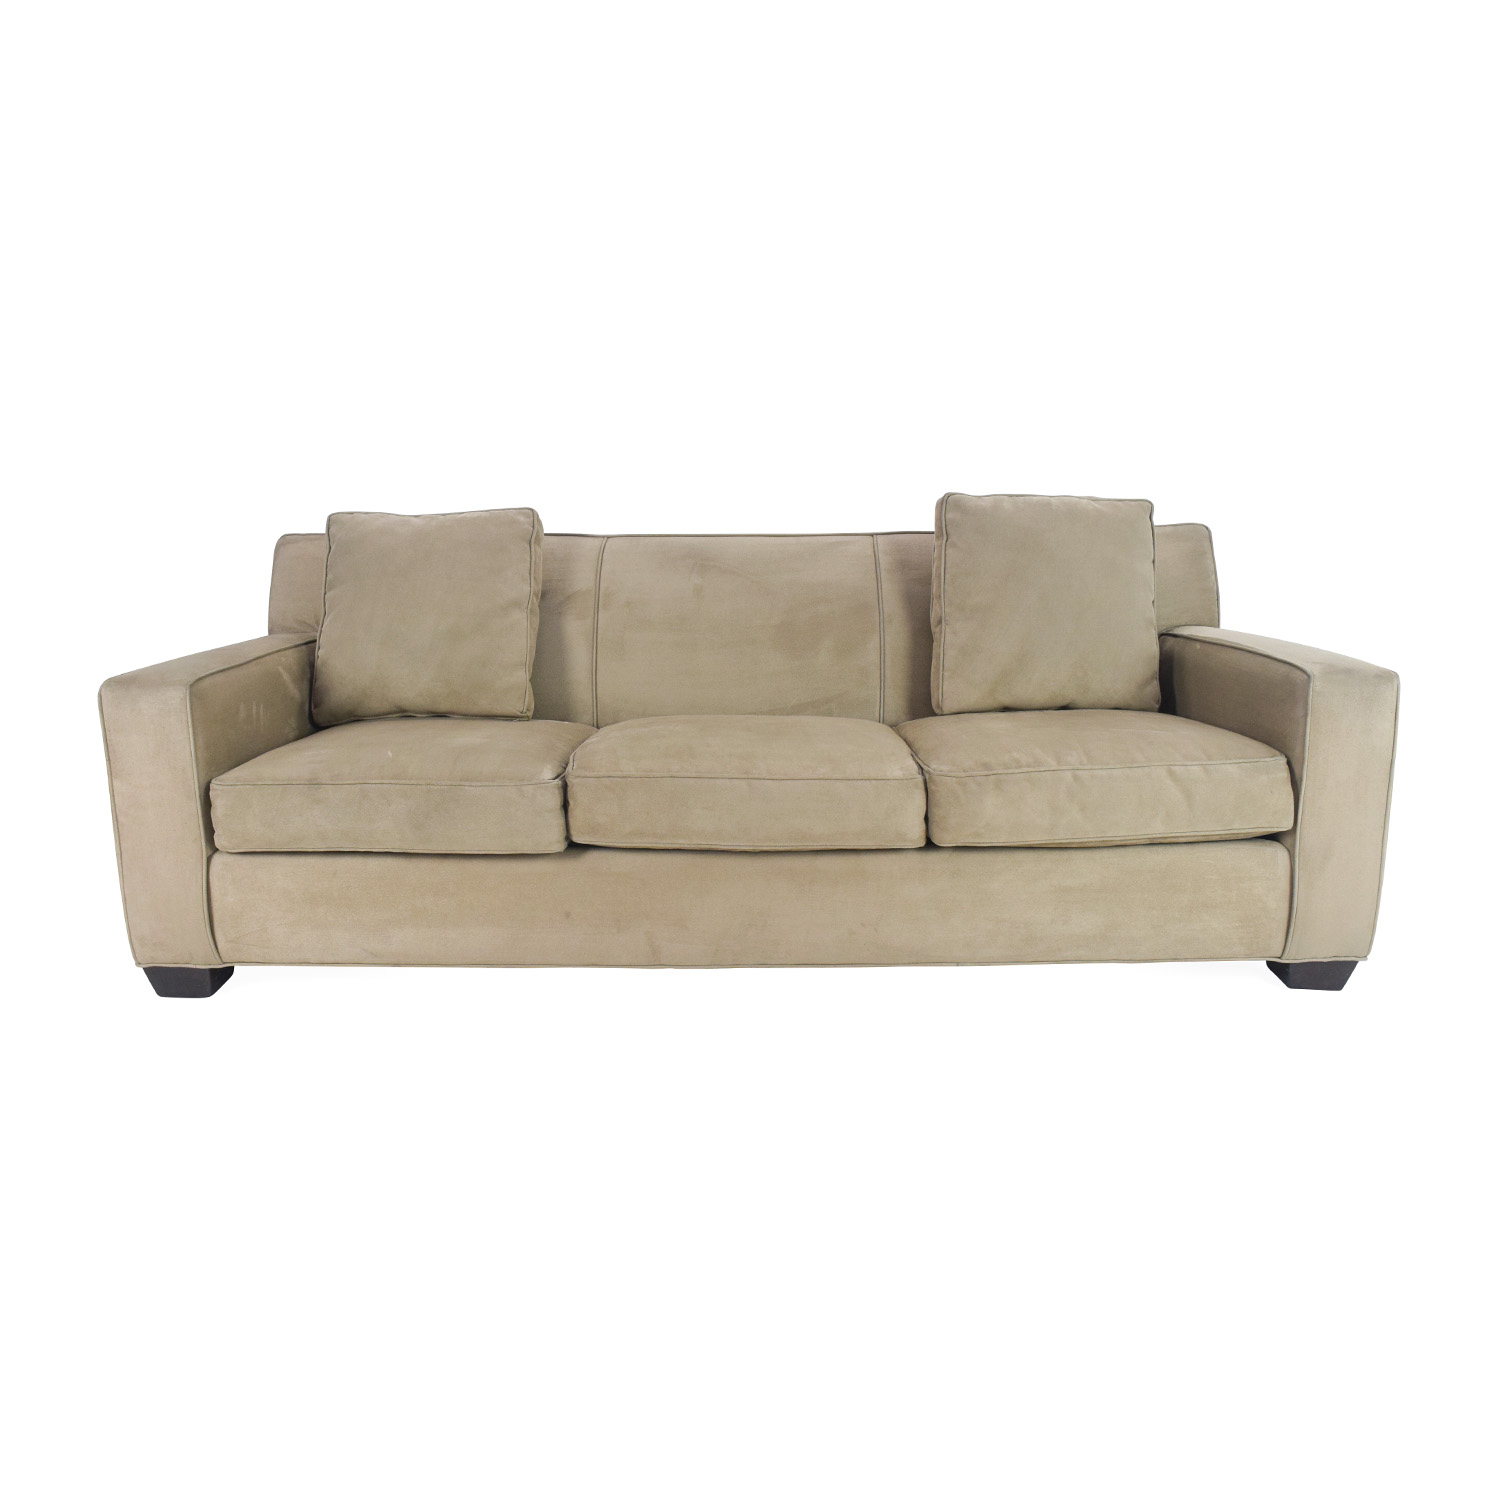 Crate and Barrel Crate and Barrel Cameron Sofa dimensions